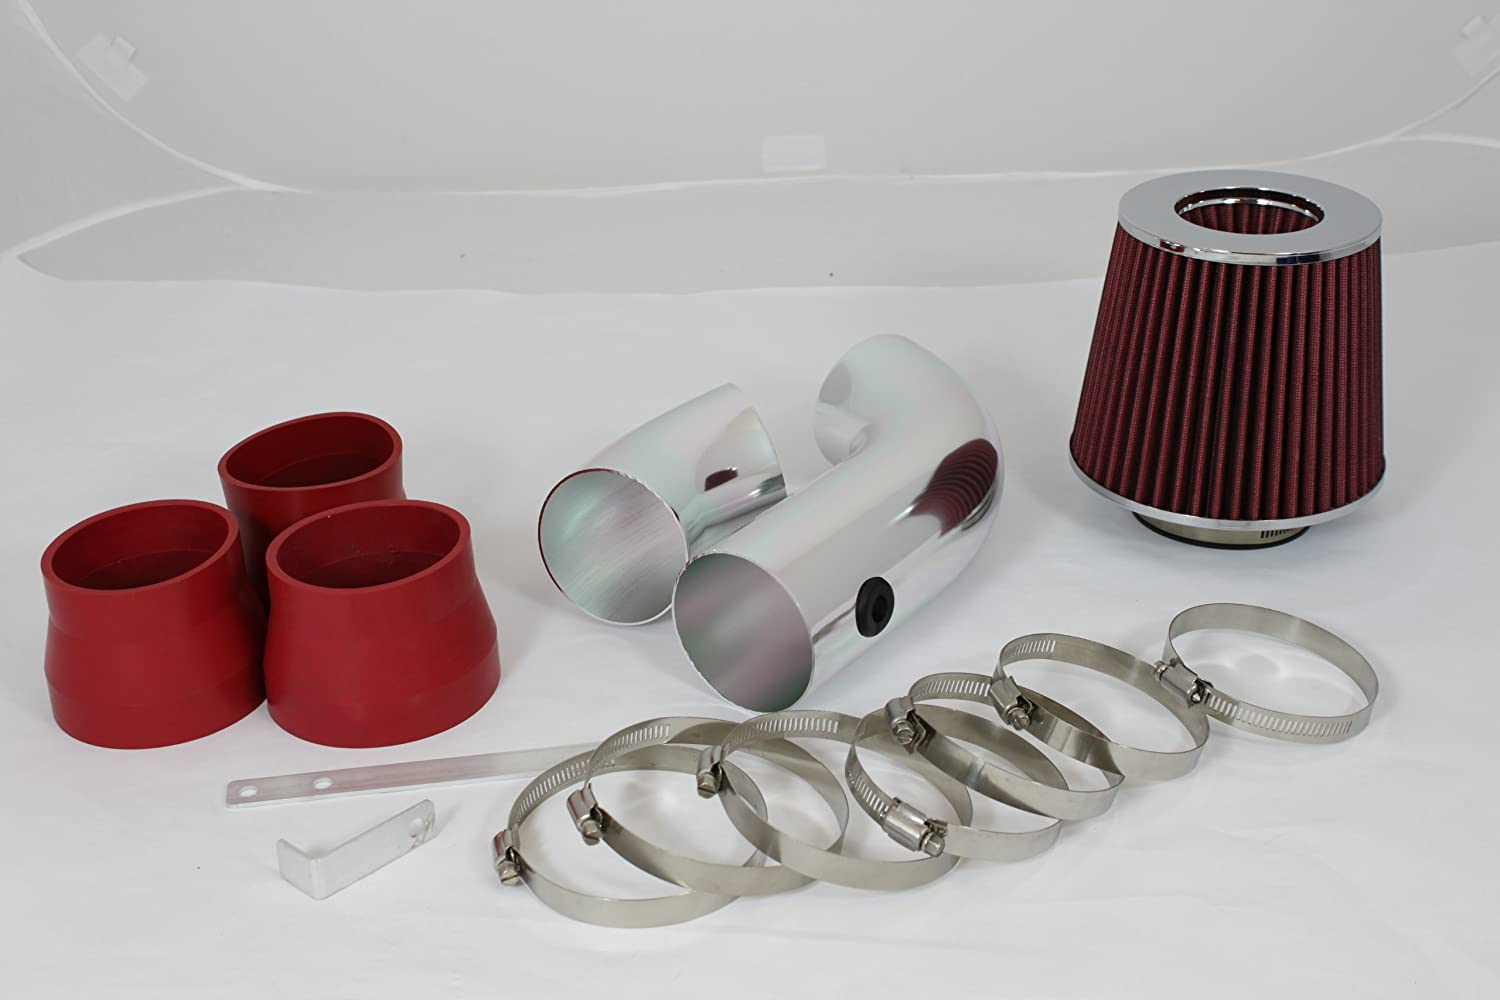 RAM AIR INTAKE KIT+RED FILTER FOR GMC 96-99 C//K1500 Sierra Yukon 5.0L 5.7L V8